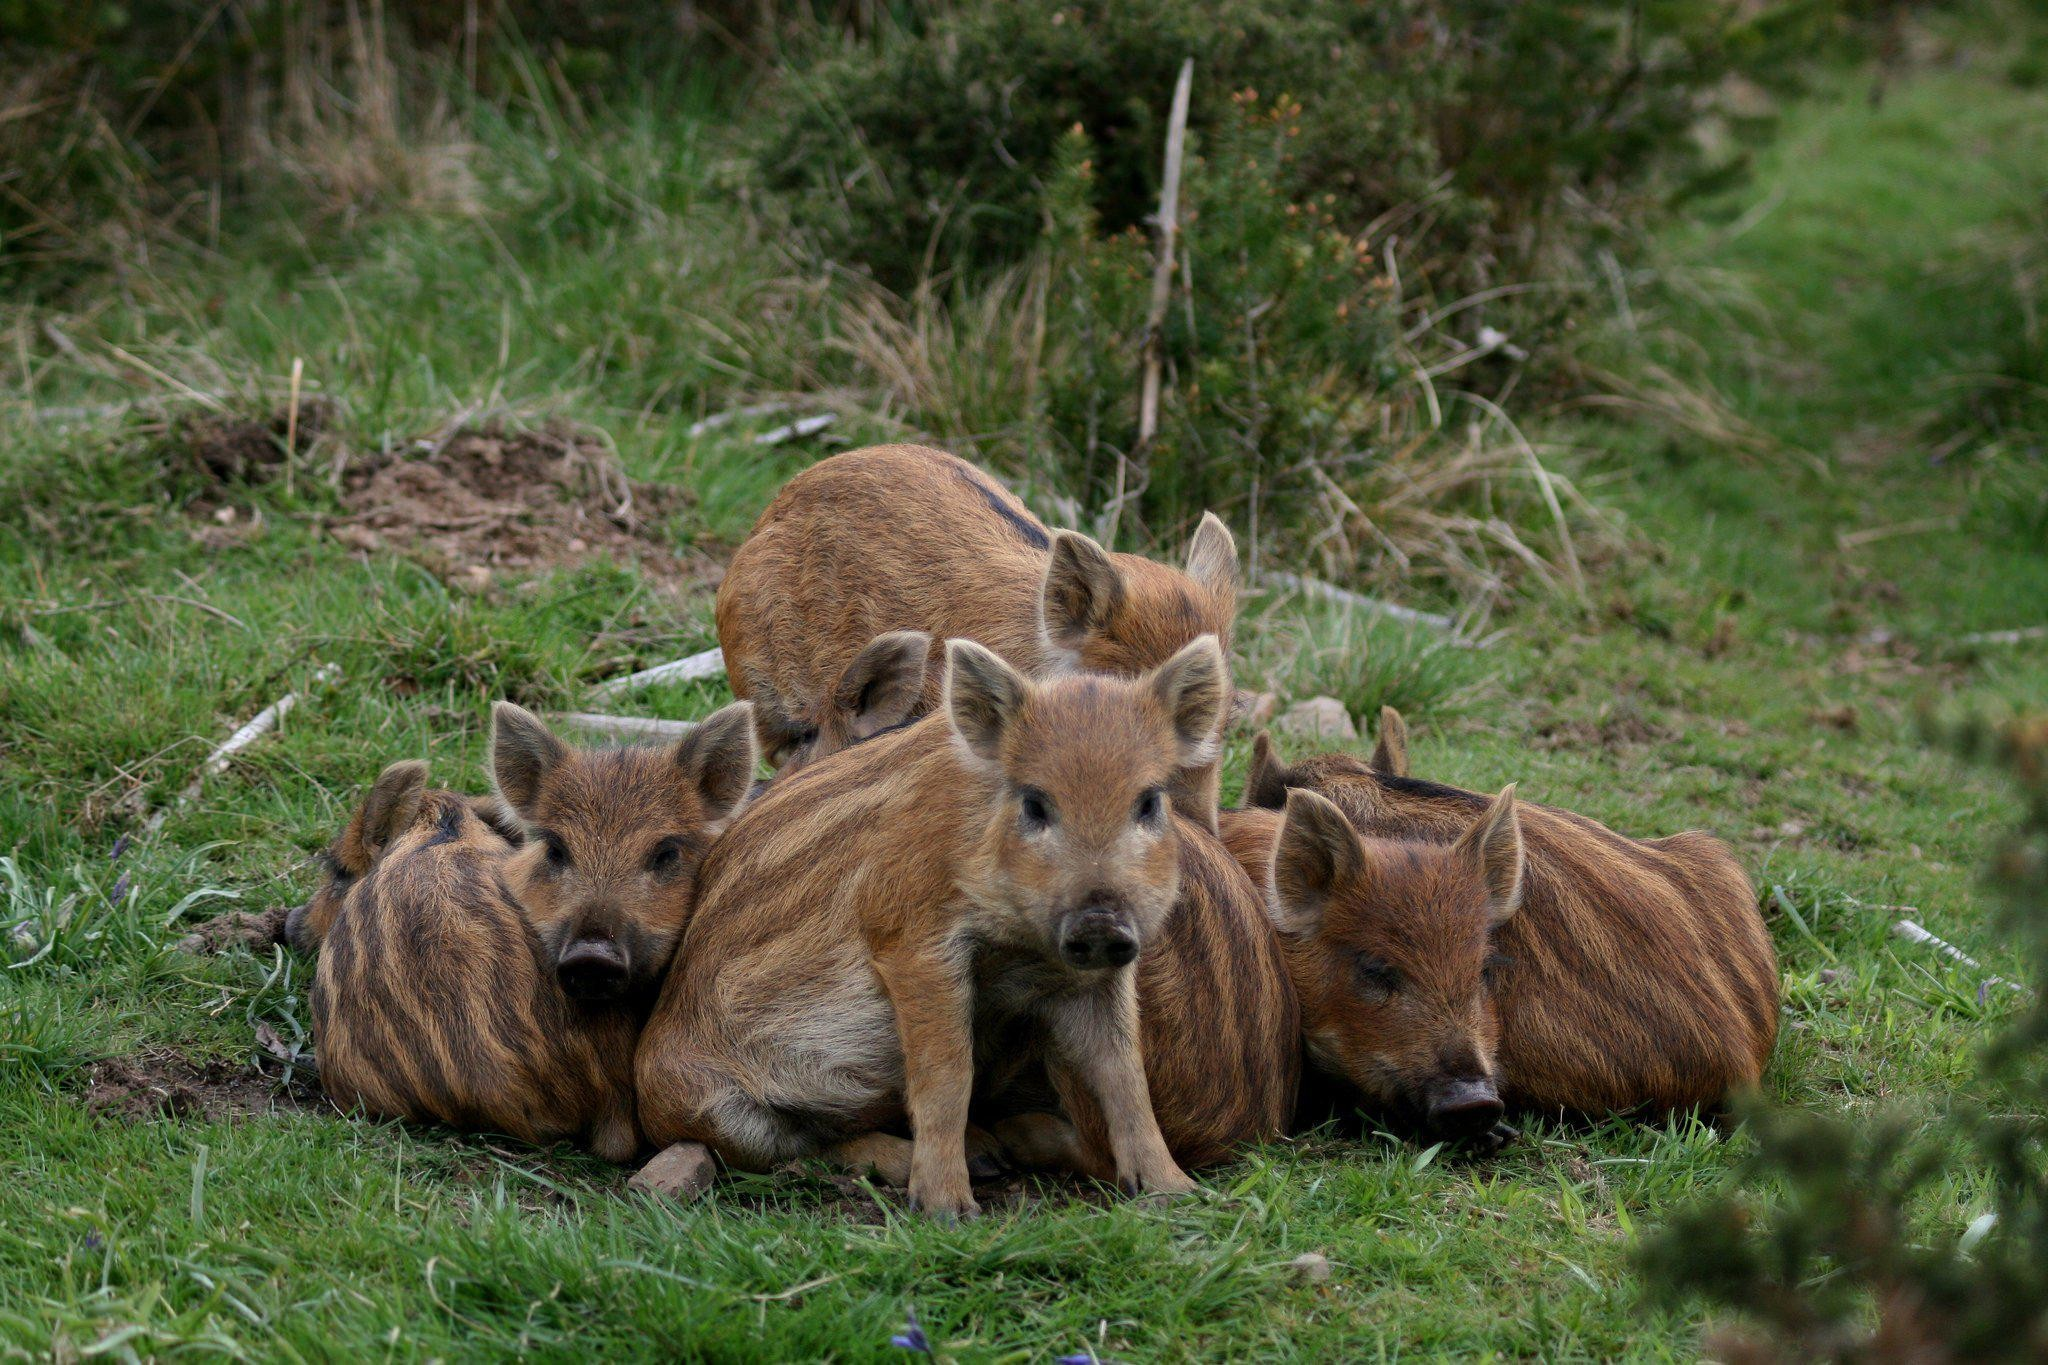 Pigs Wild Boars Baby wide Mobile